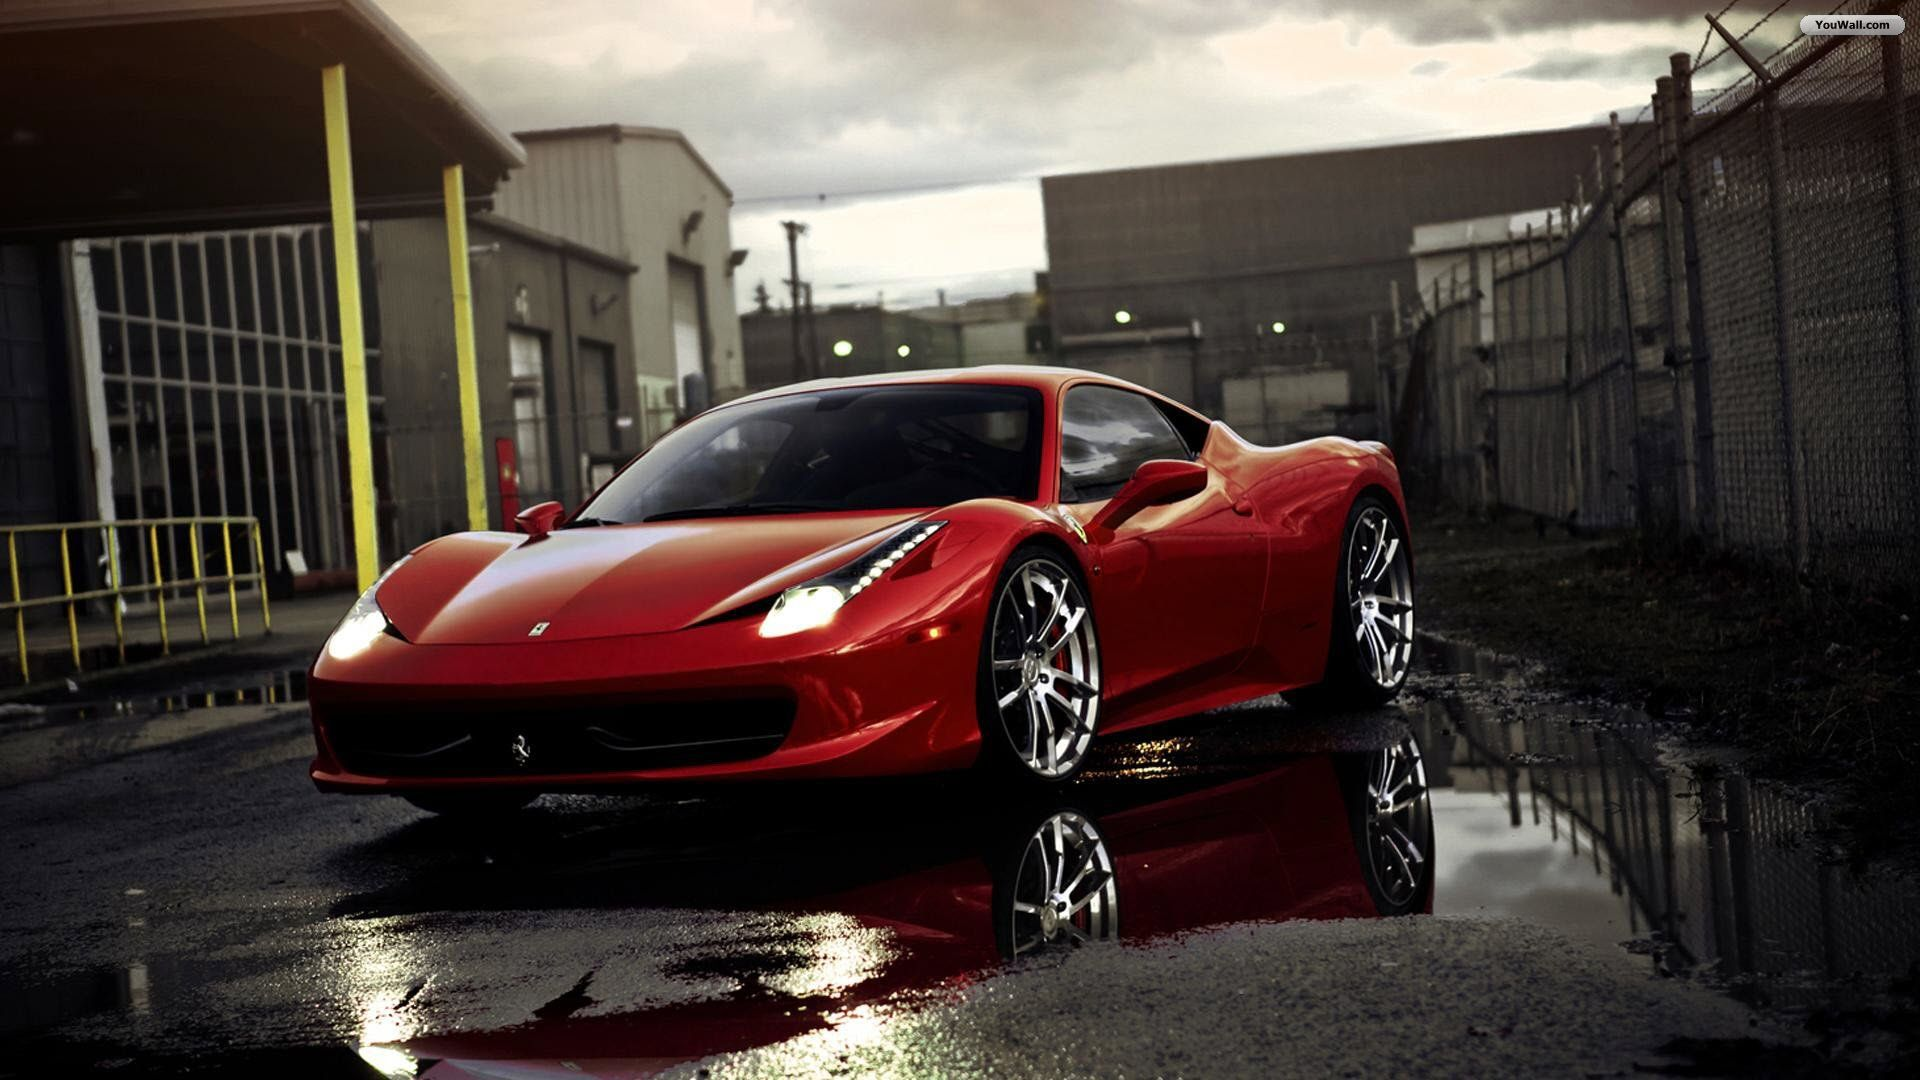 ferrari wallpaper mobile #mnf | cars | pinterest | ferrari, cars and